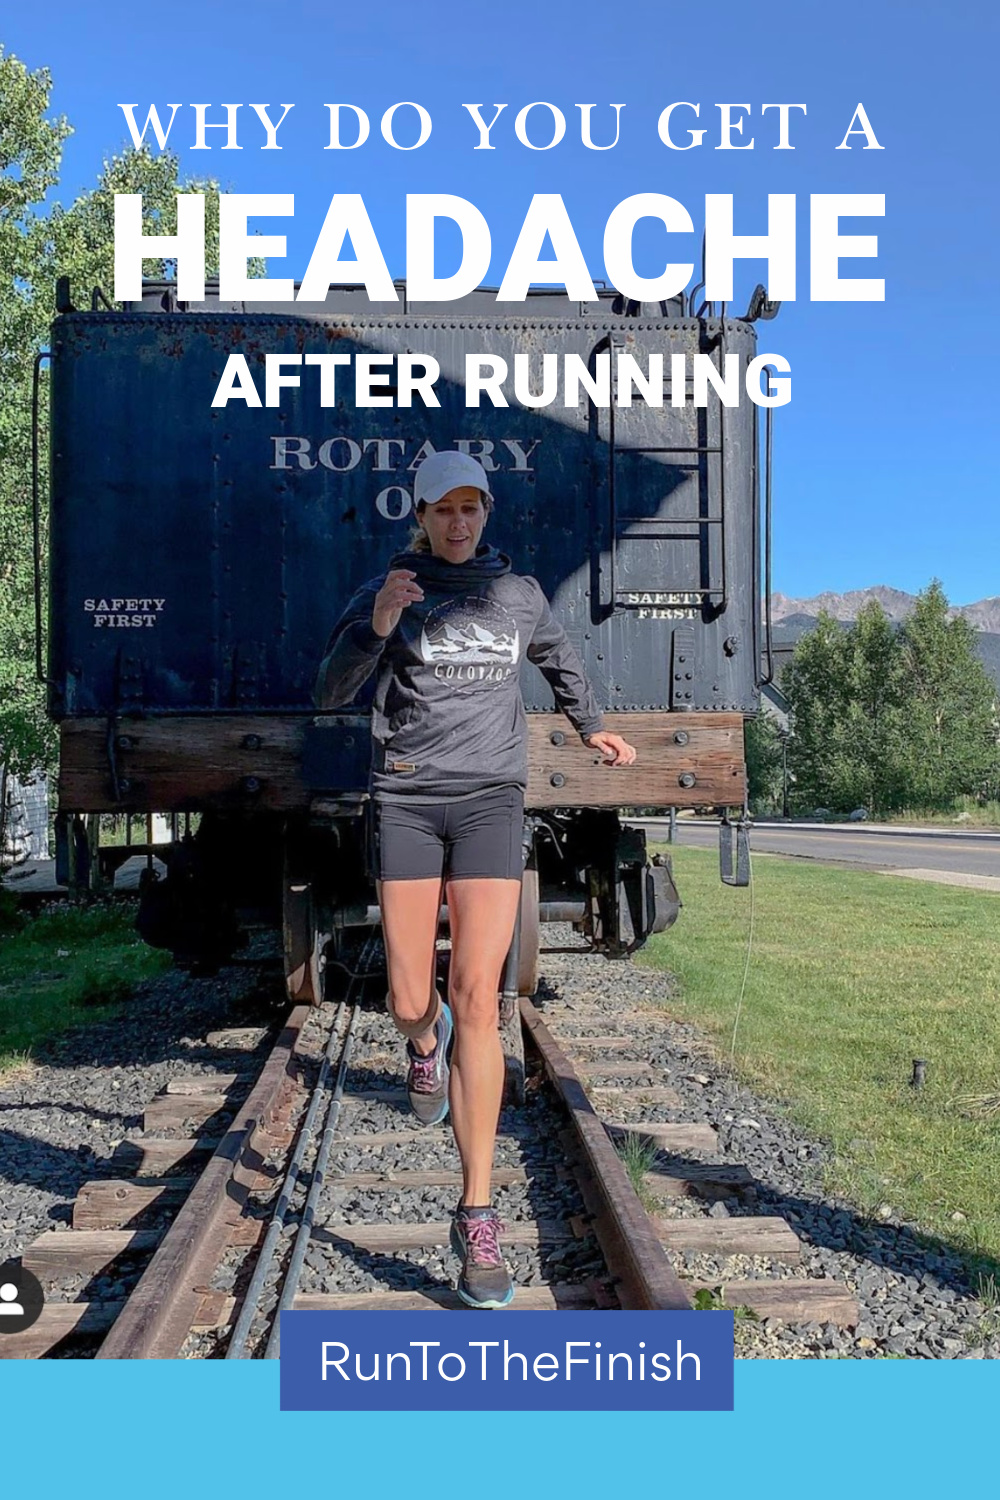 What Causes a Headache after running?